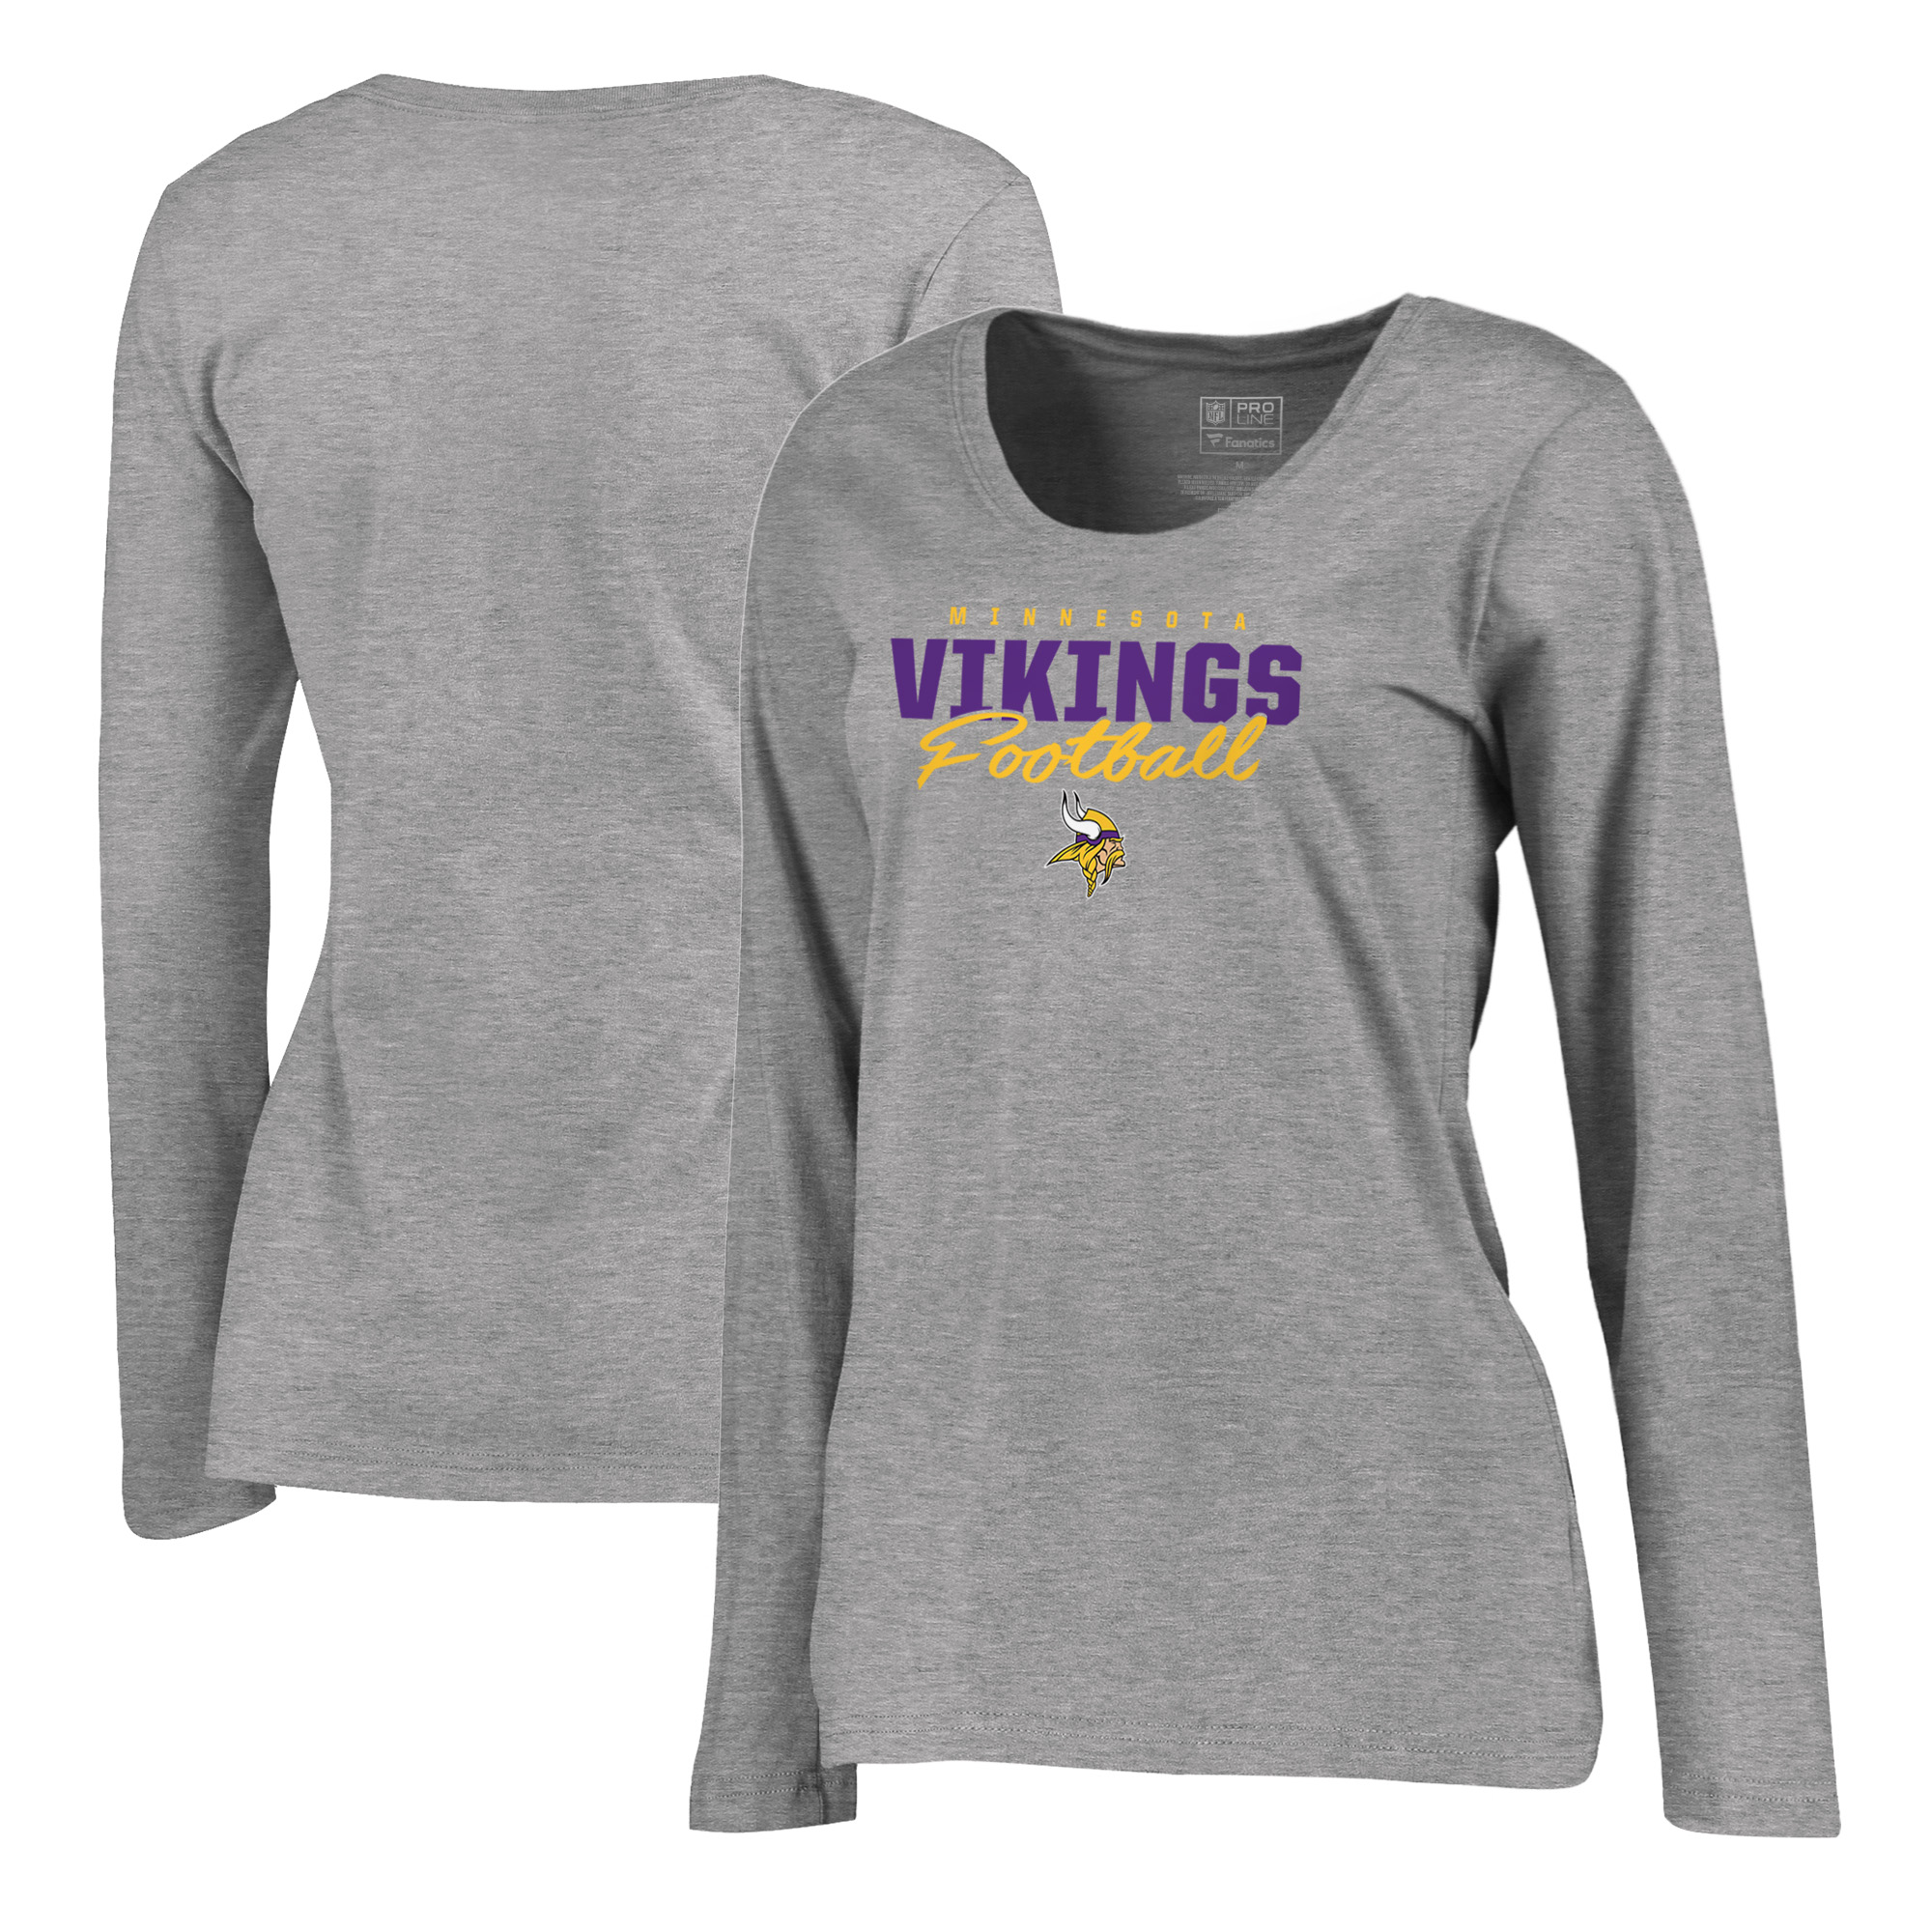 Minnesota Vikings NFL Pro Line by Fanatics Branded Women's Iconic Collection Script Assist Plus Size Long Sleeve T-Shirt - Ash